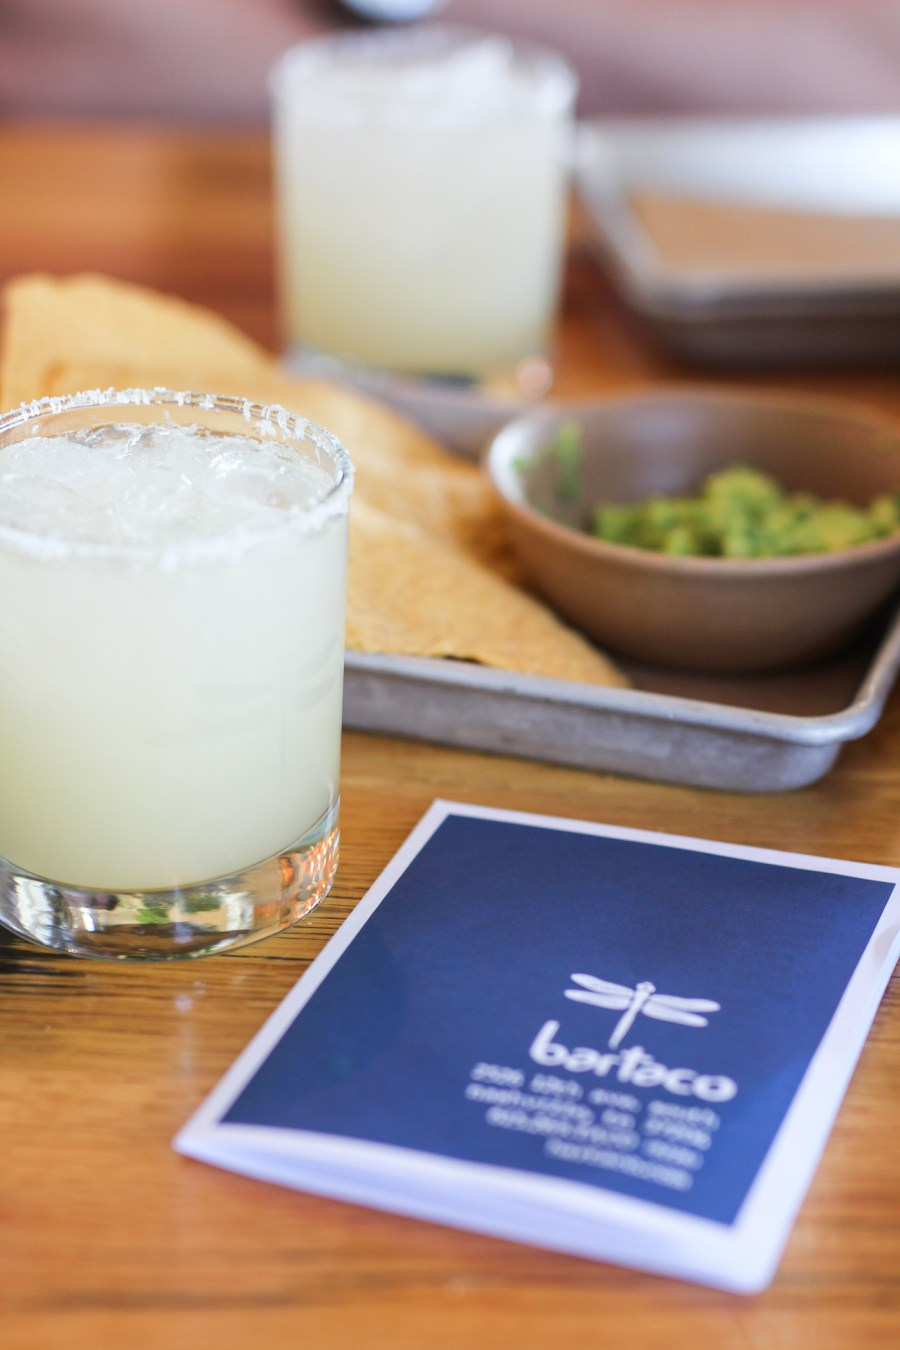 bartaco, Nashville, 12 South, Mexican Restaurant, Margarita, Travel, Treats and Trends, Nashville Guide